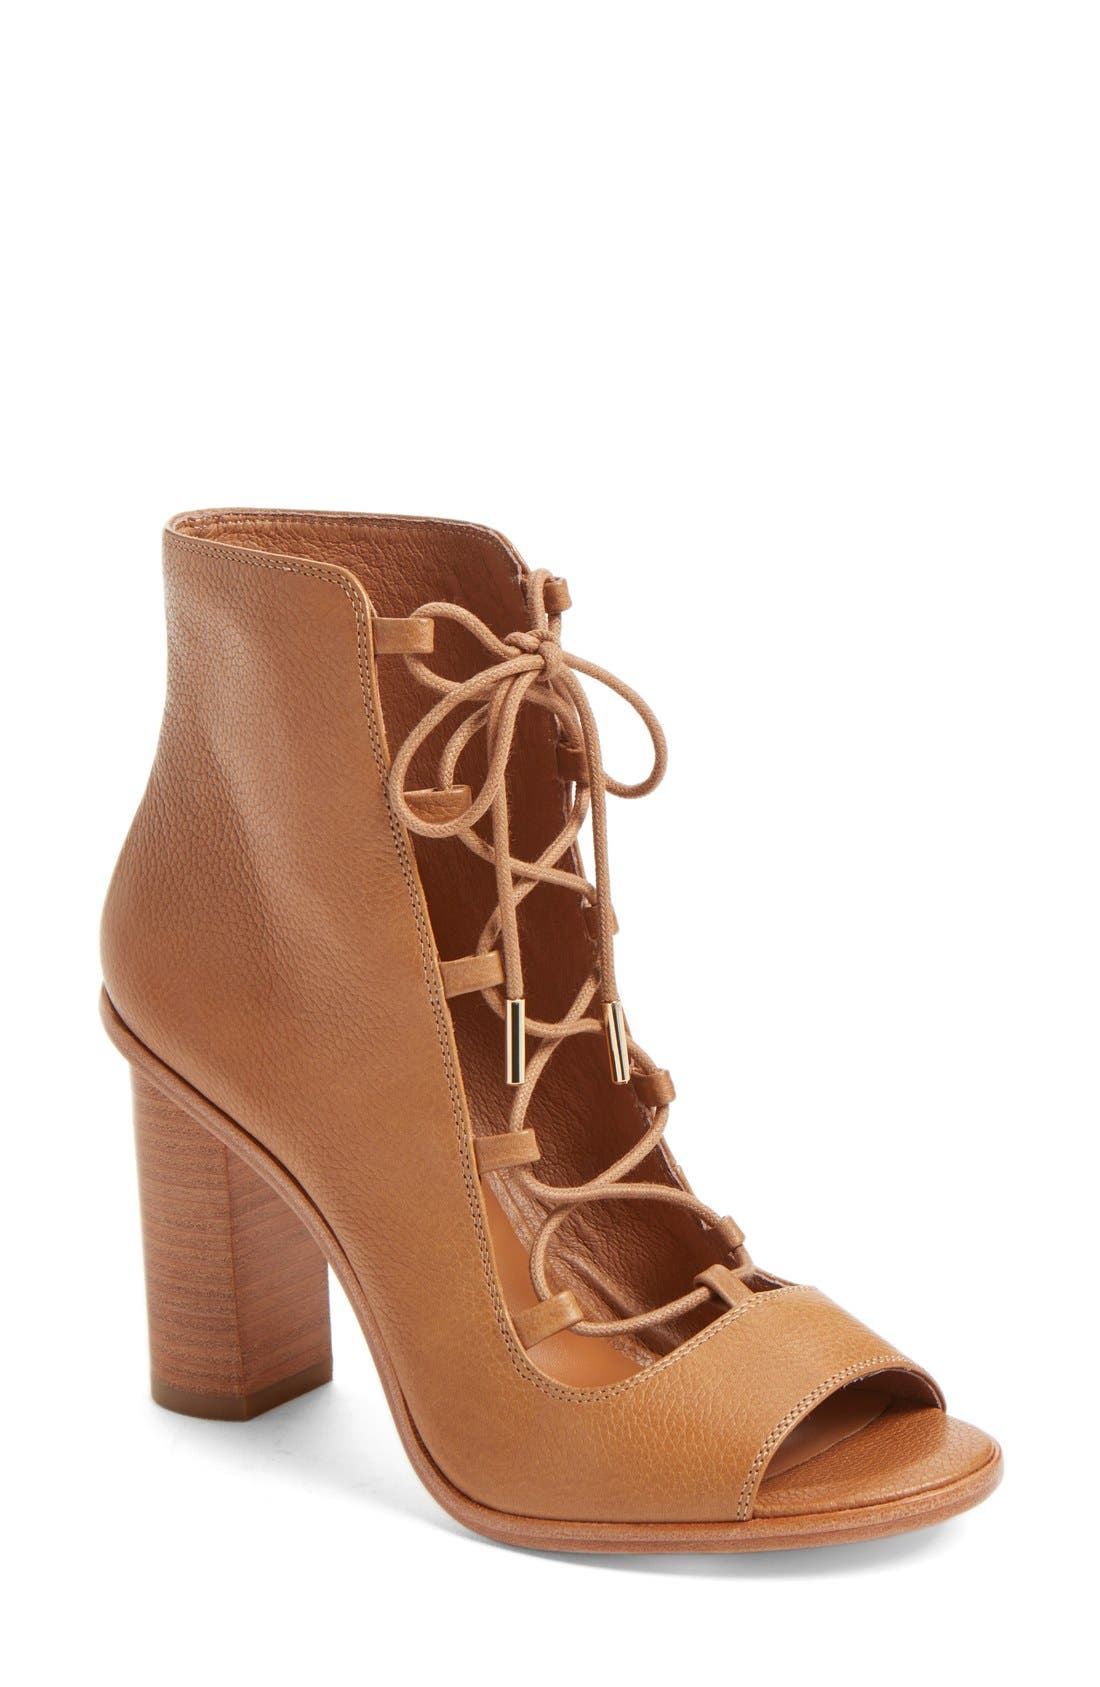 Alternate Image 1 Selected - Joie 'Cordelia' Lace-Up Sandal (Women)